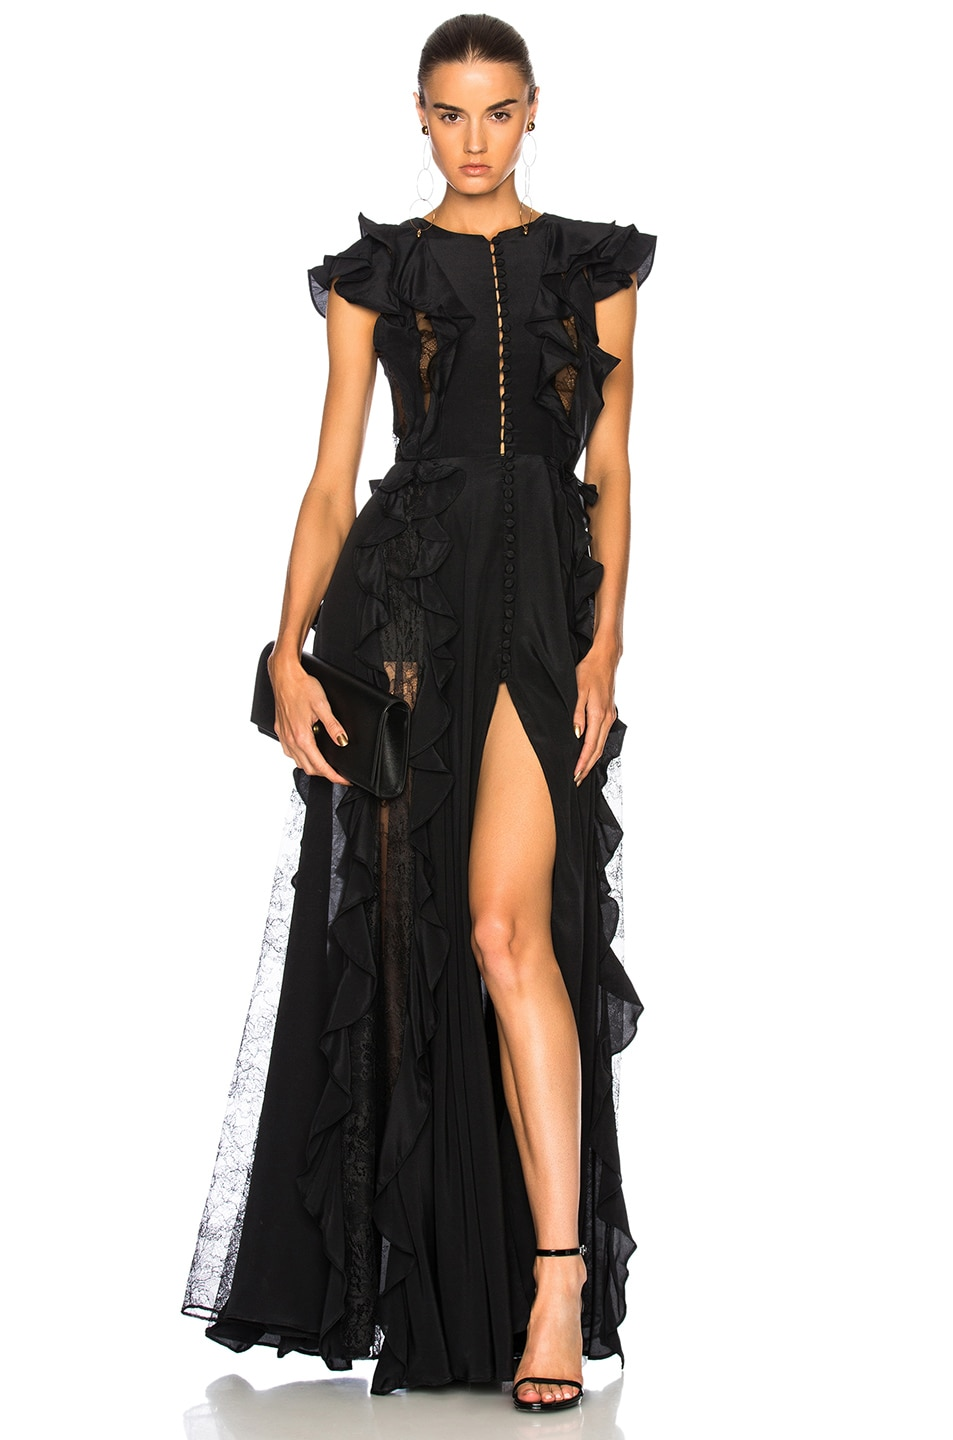 451efed8c17 Image 1 of Zuhair Murad Ruffle   Lace Trim Gown in Black